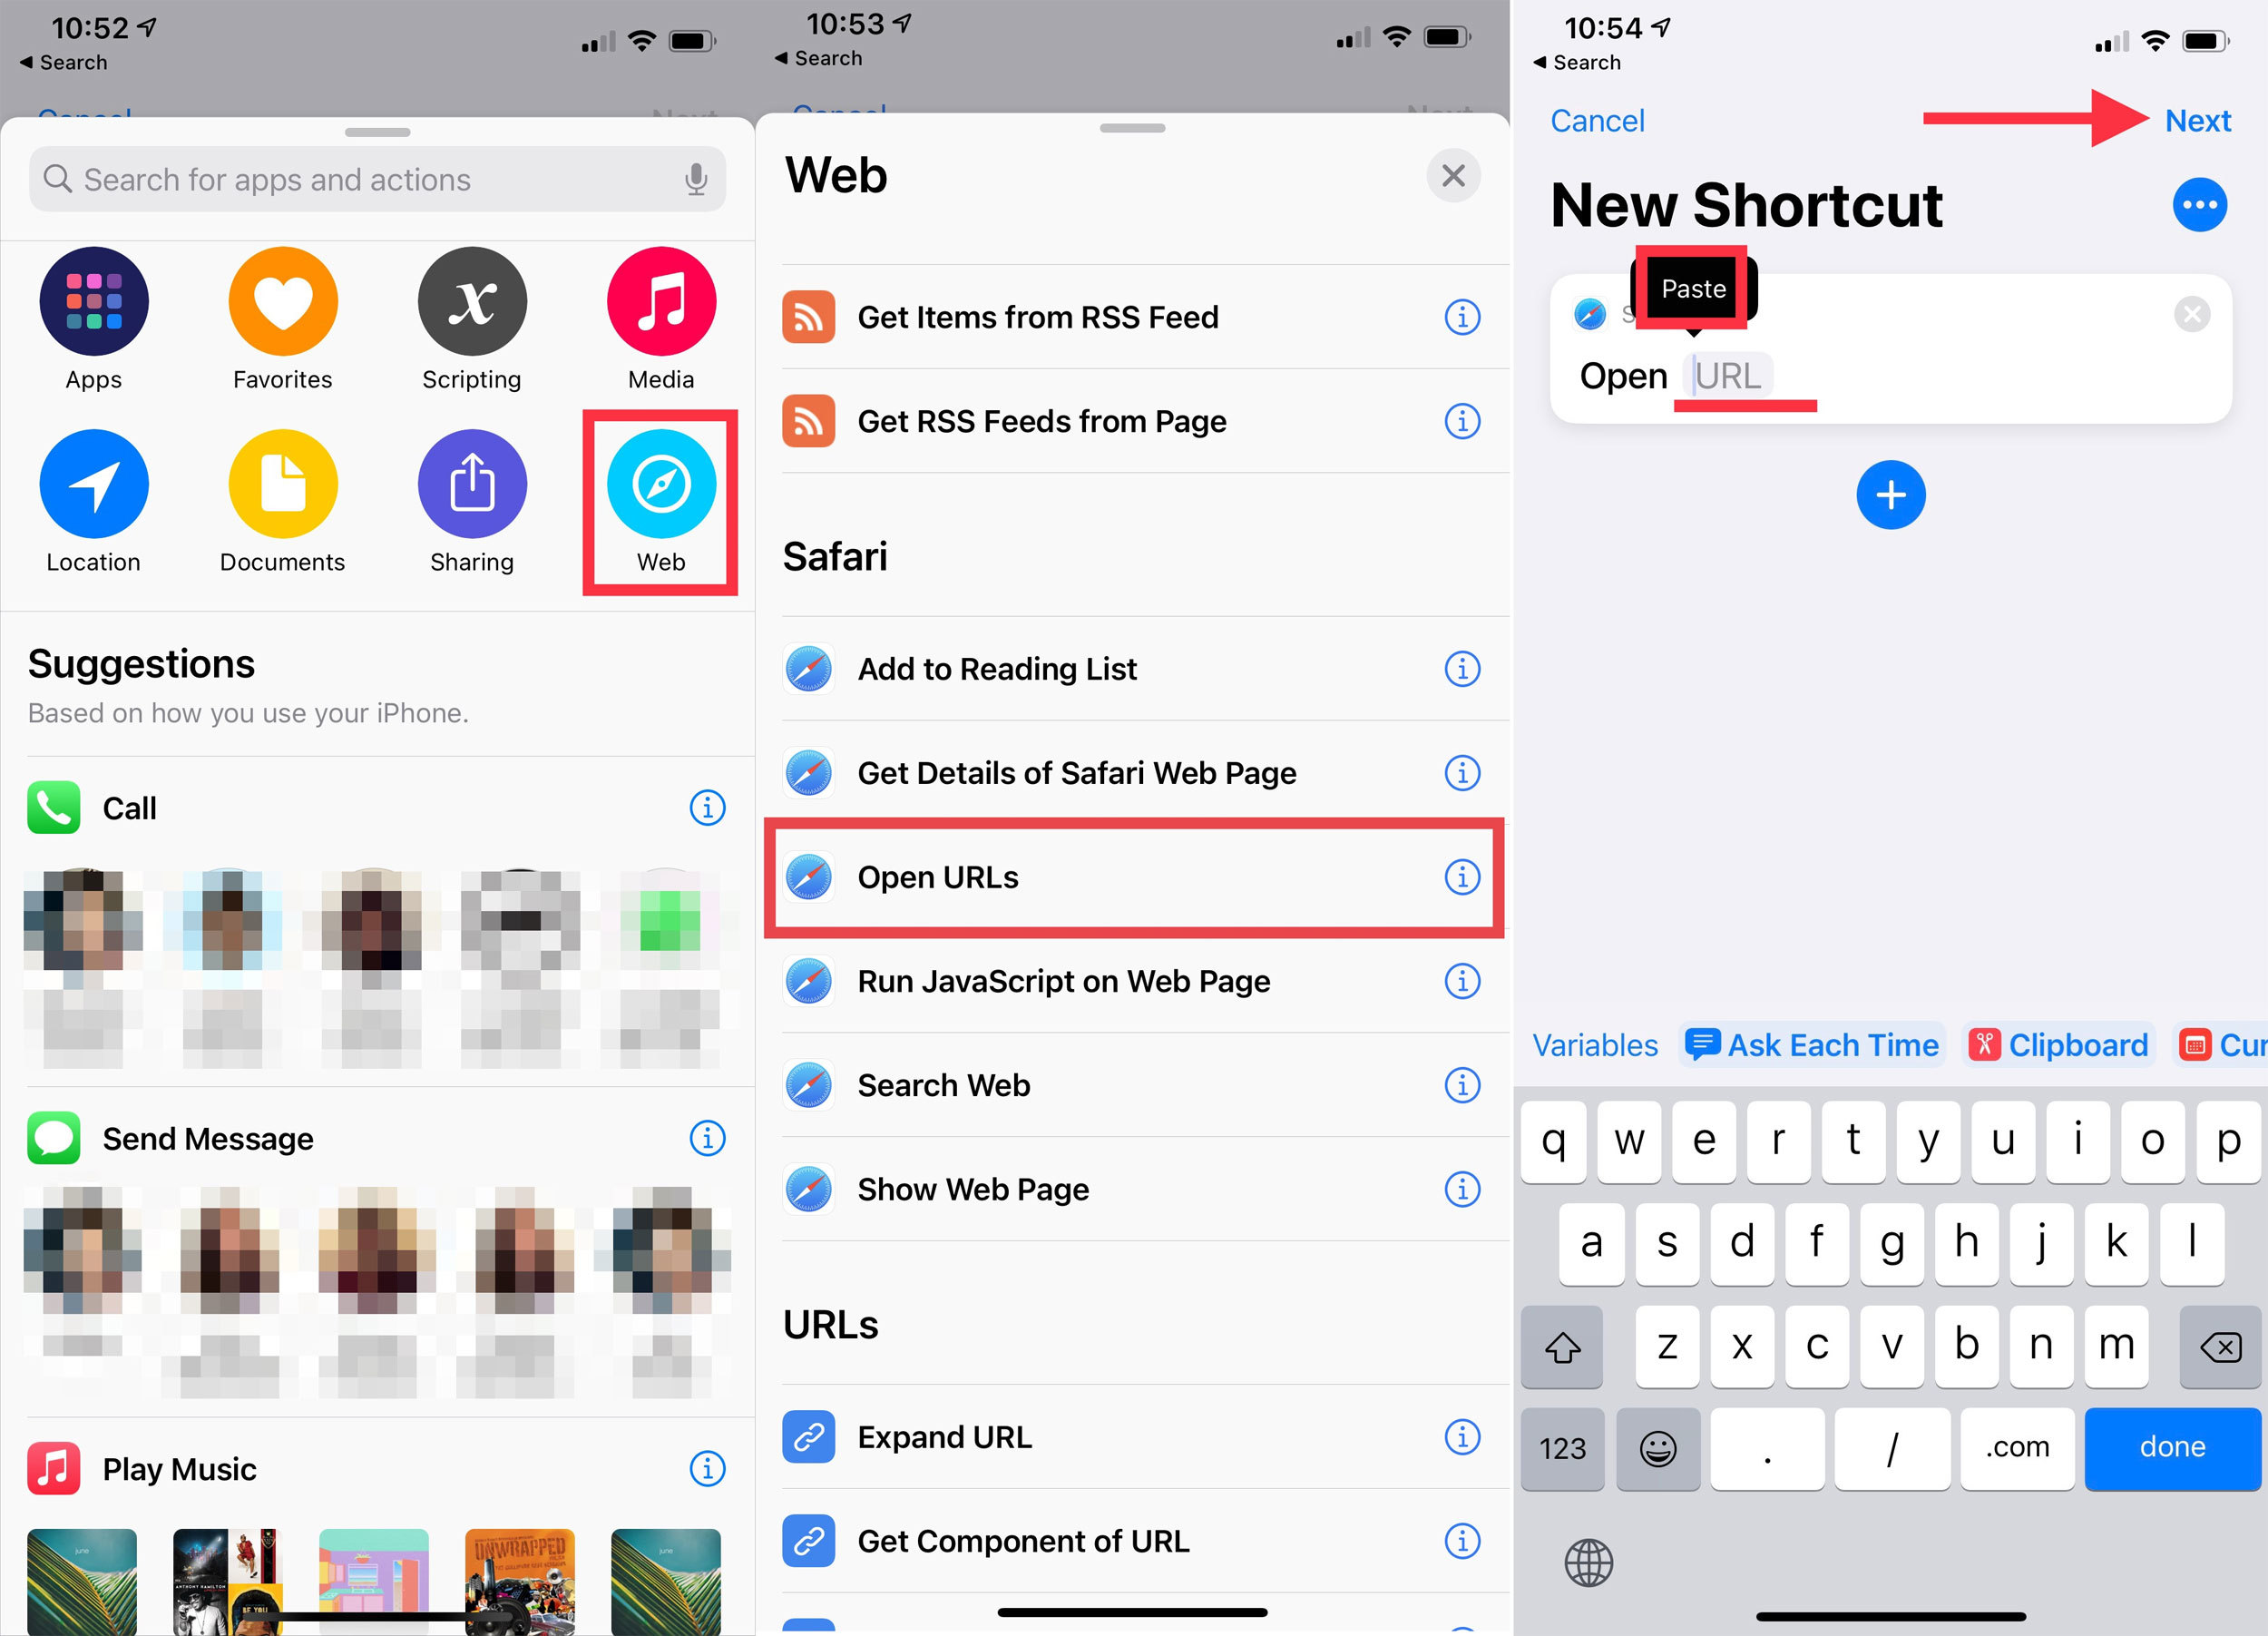 screenshot of the shortcut app